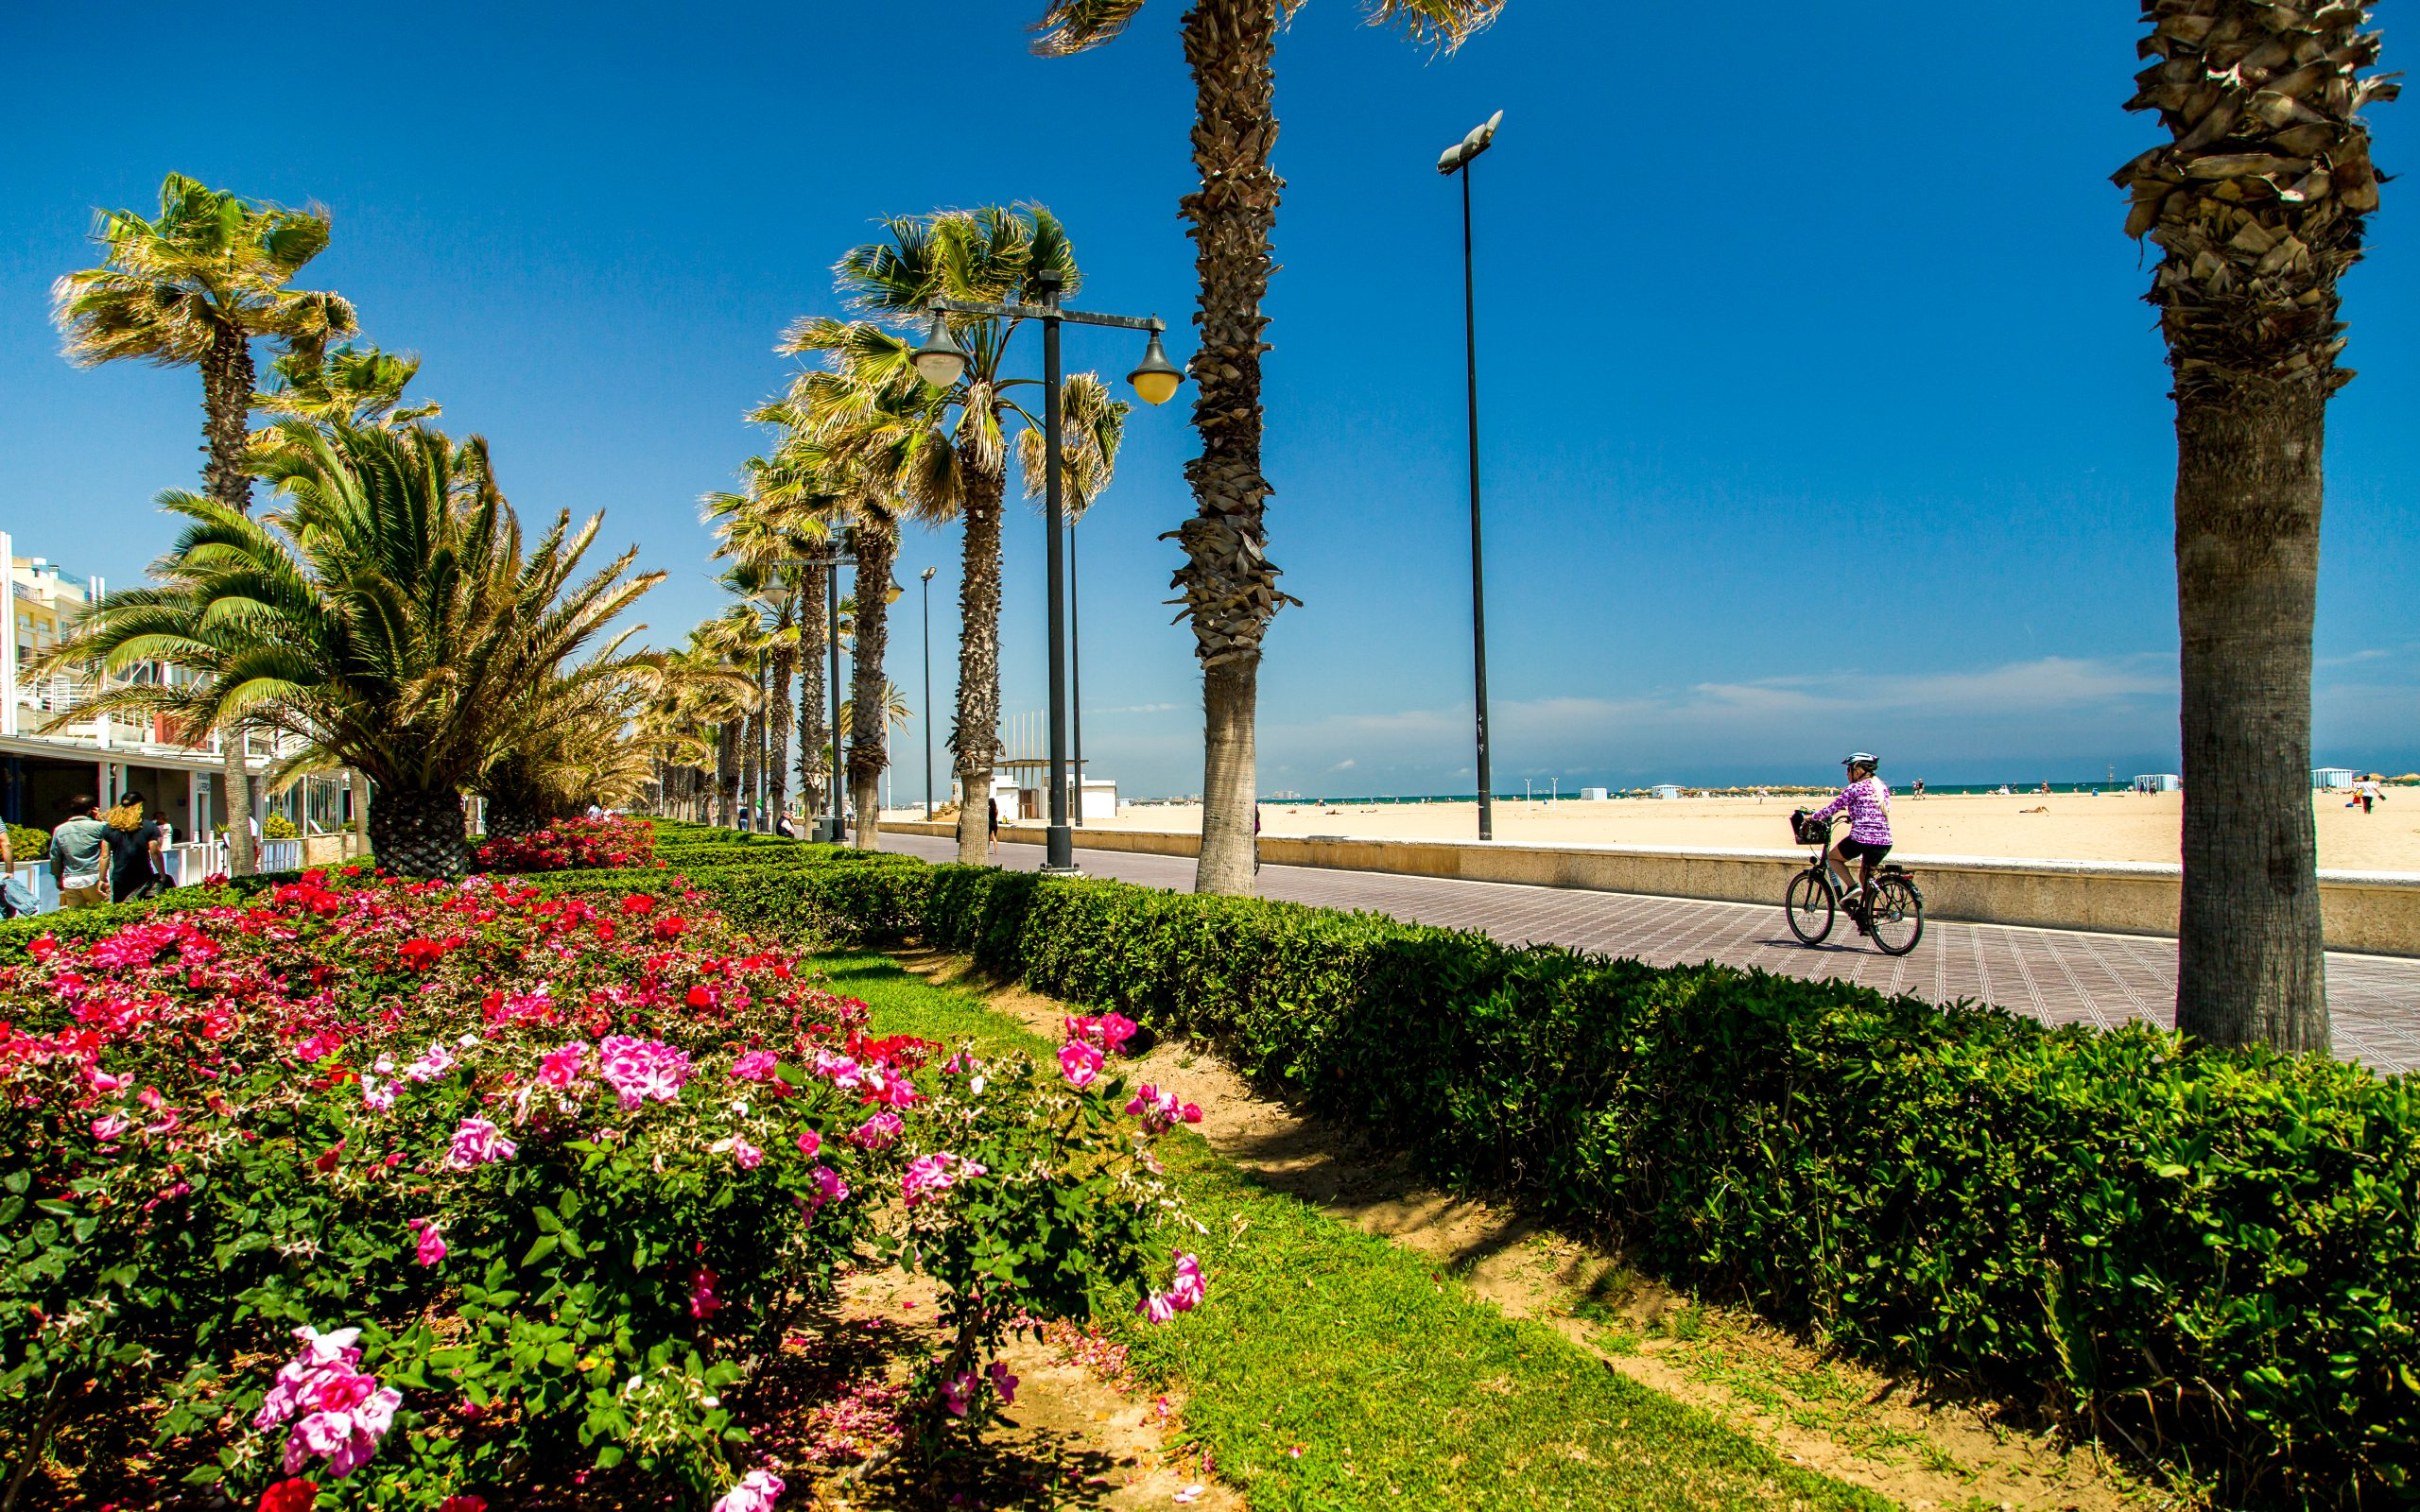 A guest rides a bicycle along the beachside boardwalk in Valencia, Spain.